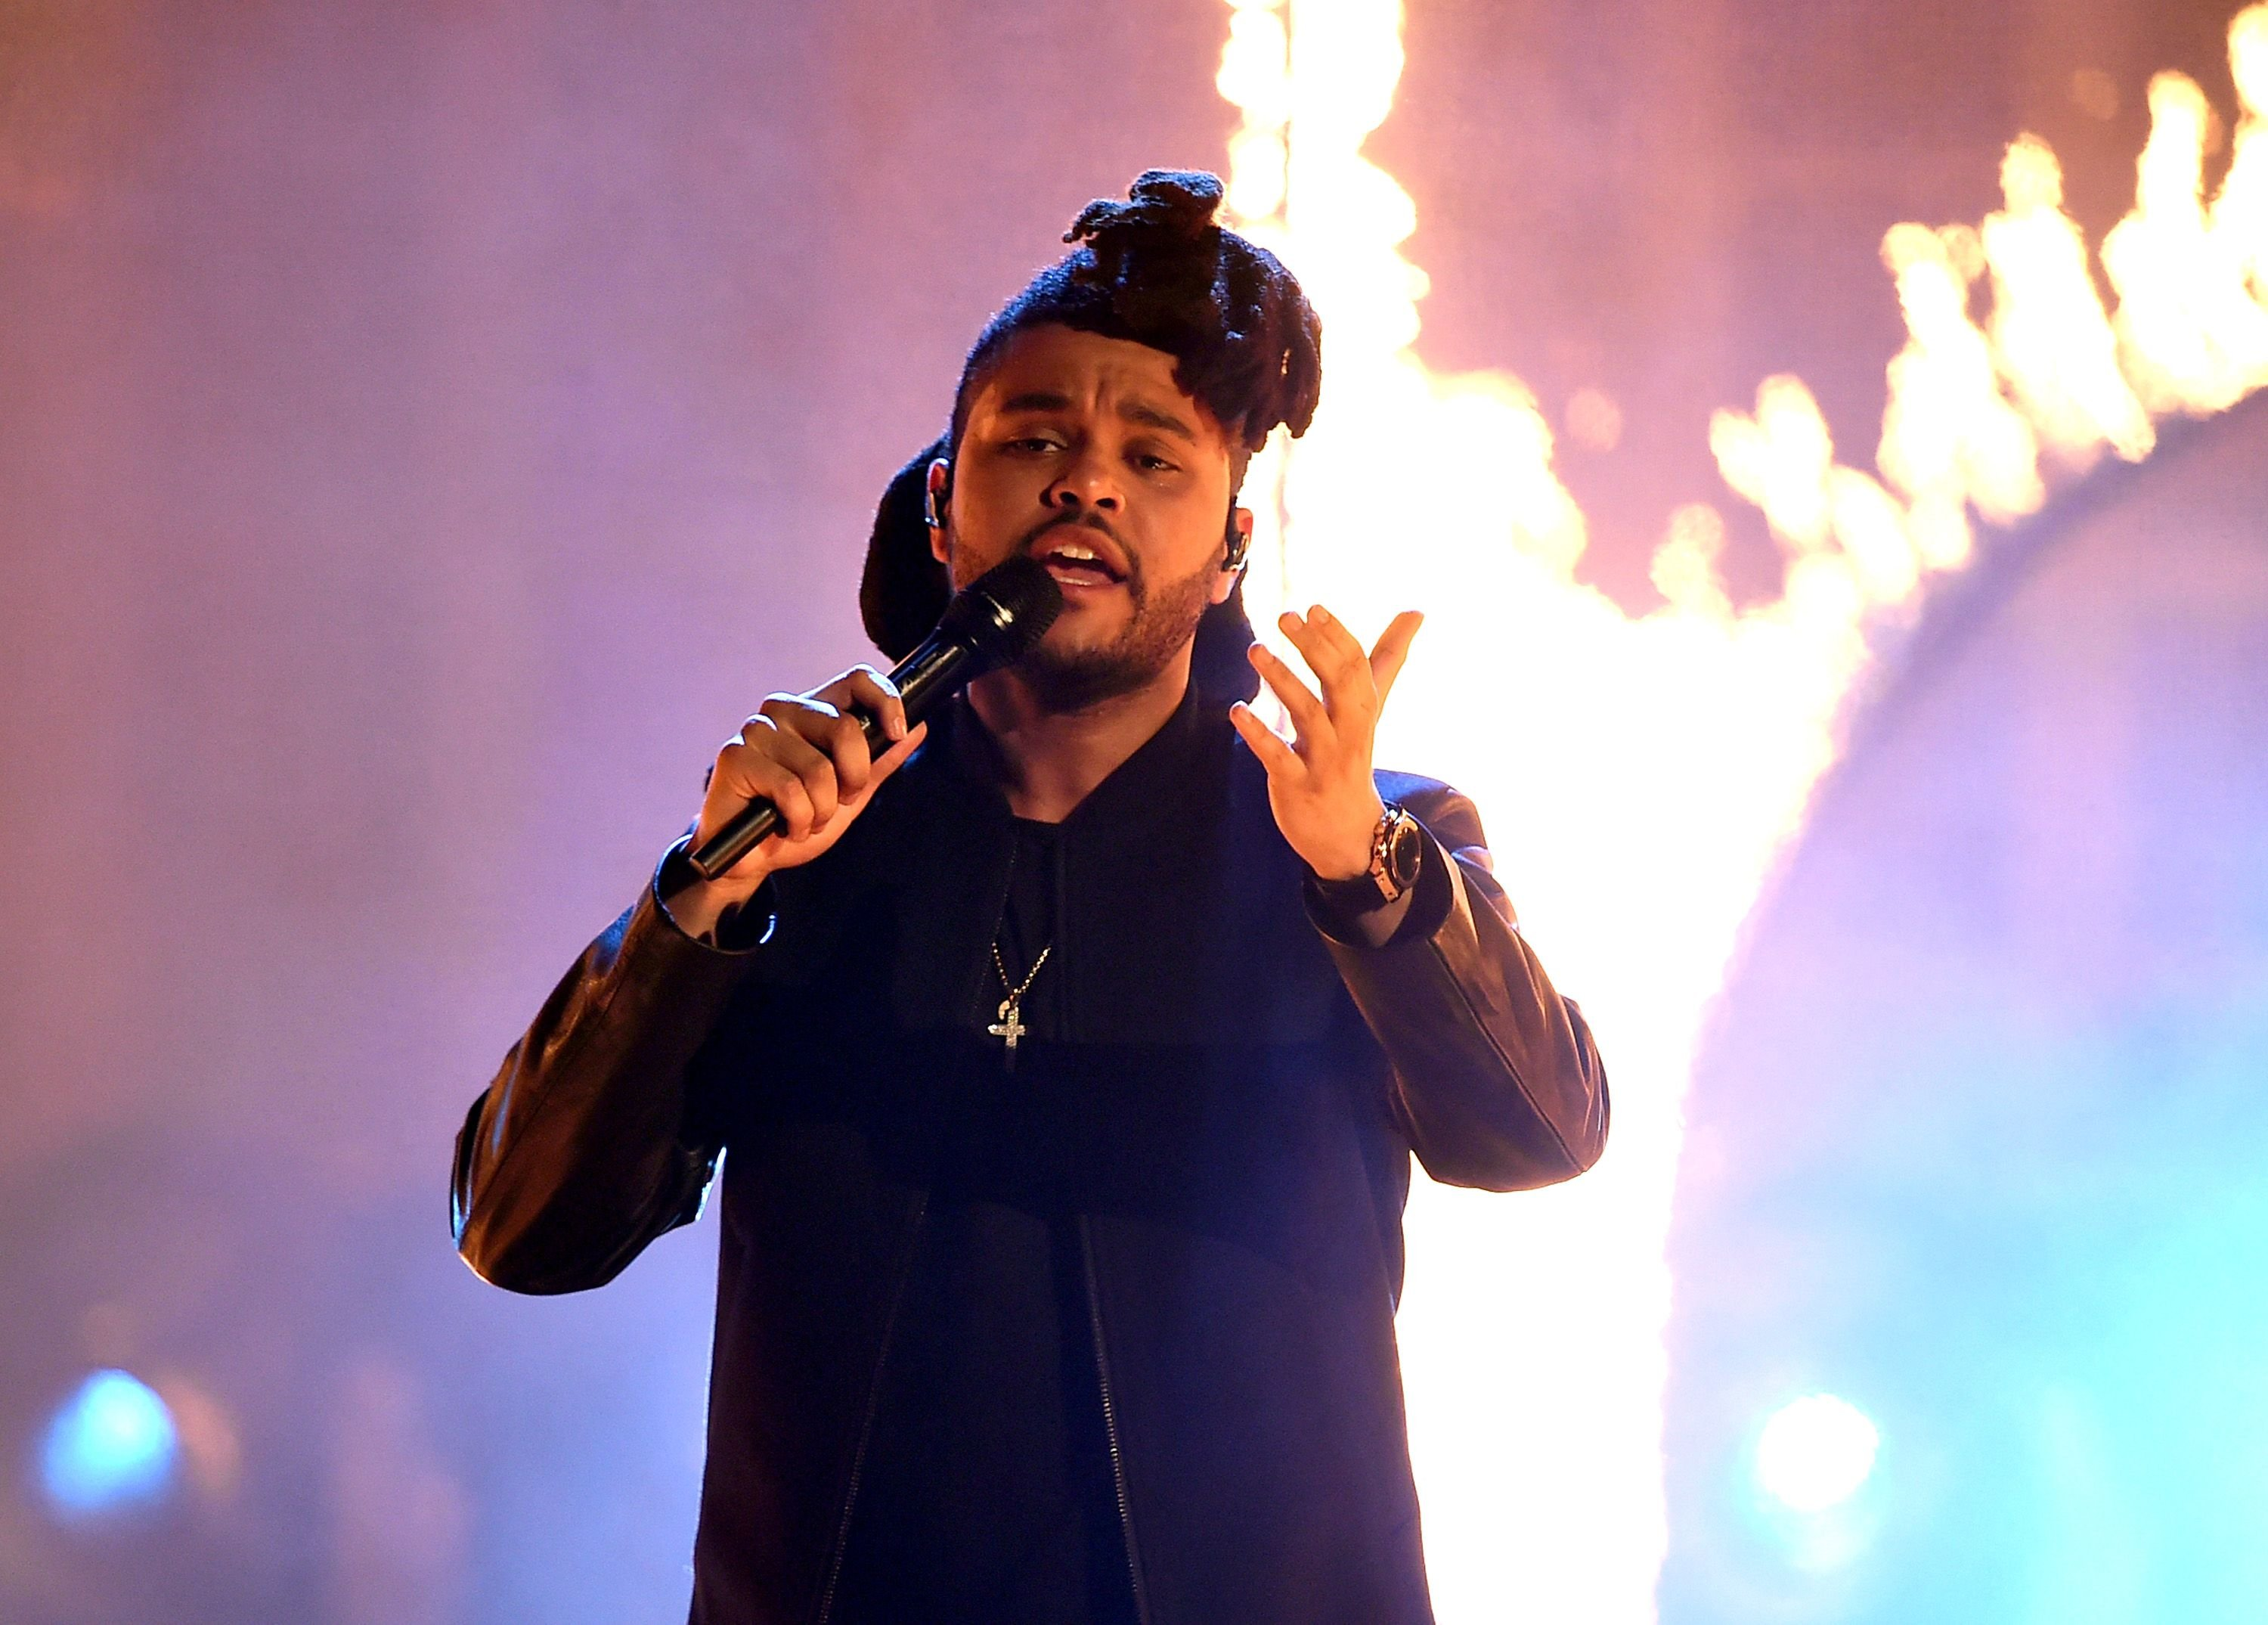 Singer The Weeknd performs onstage during the 2015 American Music Awards at Microsoft Theater on November 22, 2015 in Los Angeles, California. | Photo: Getty Images